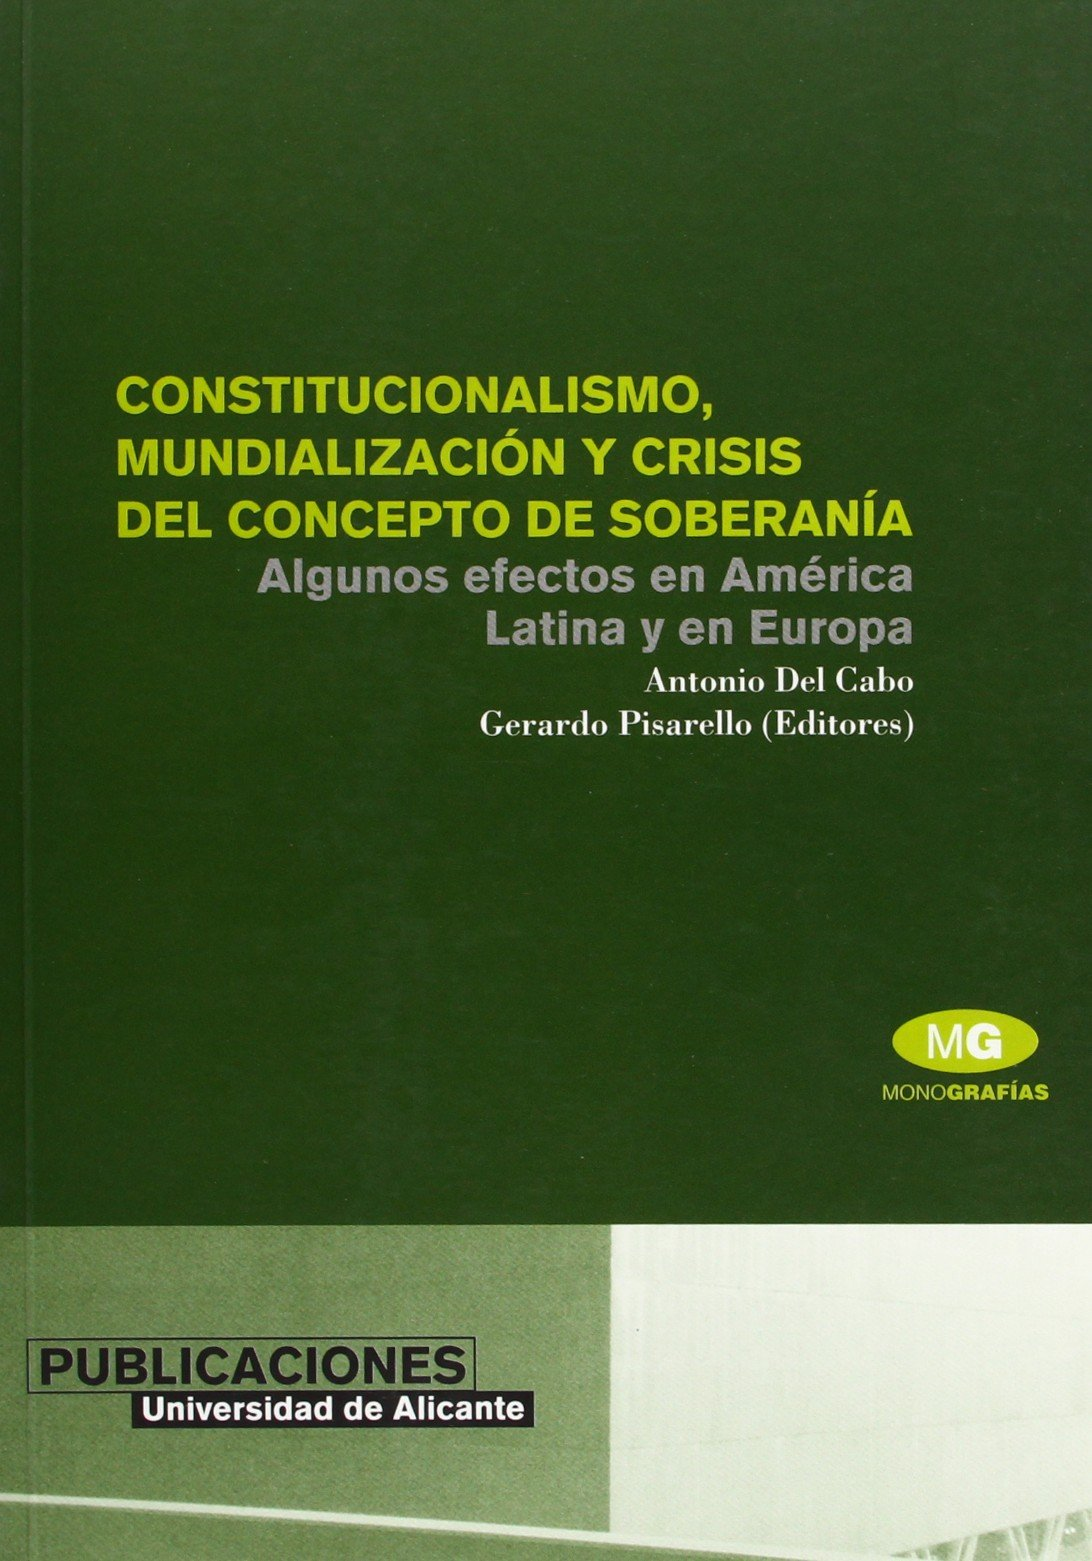 Constitucionalismo, mundializacion y crisis del concepto de soberania / Constitutionalism, globalization and the concept of sovereignty crisis: ... in Latin ...